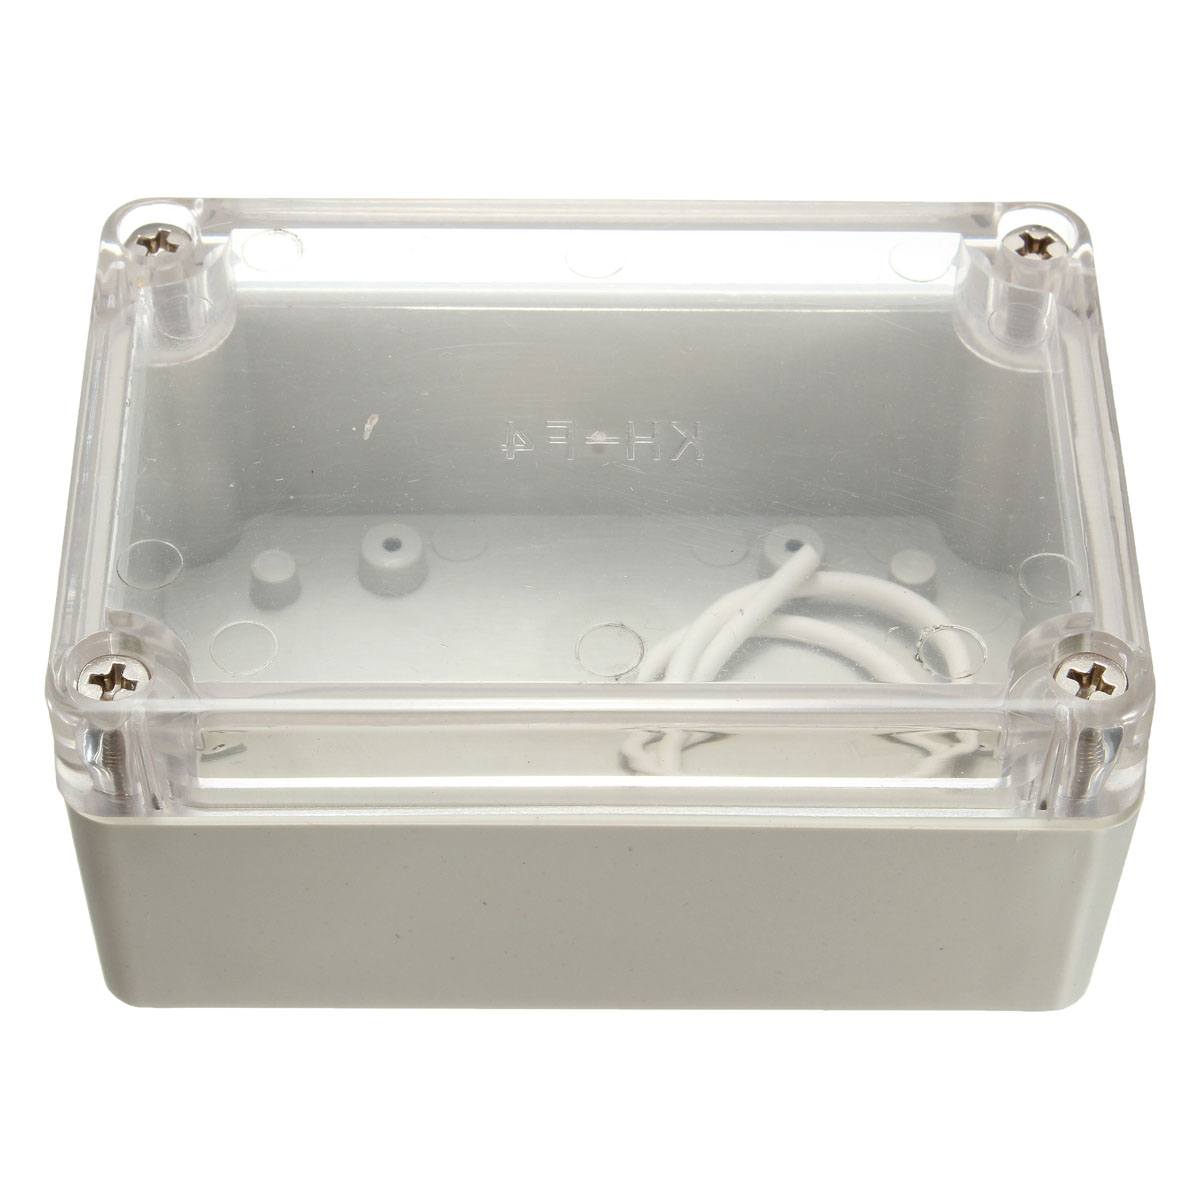 100x68x50mm Waterproof Clear Cover Electronic Project Box